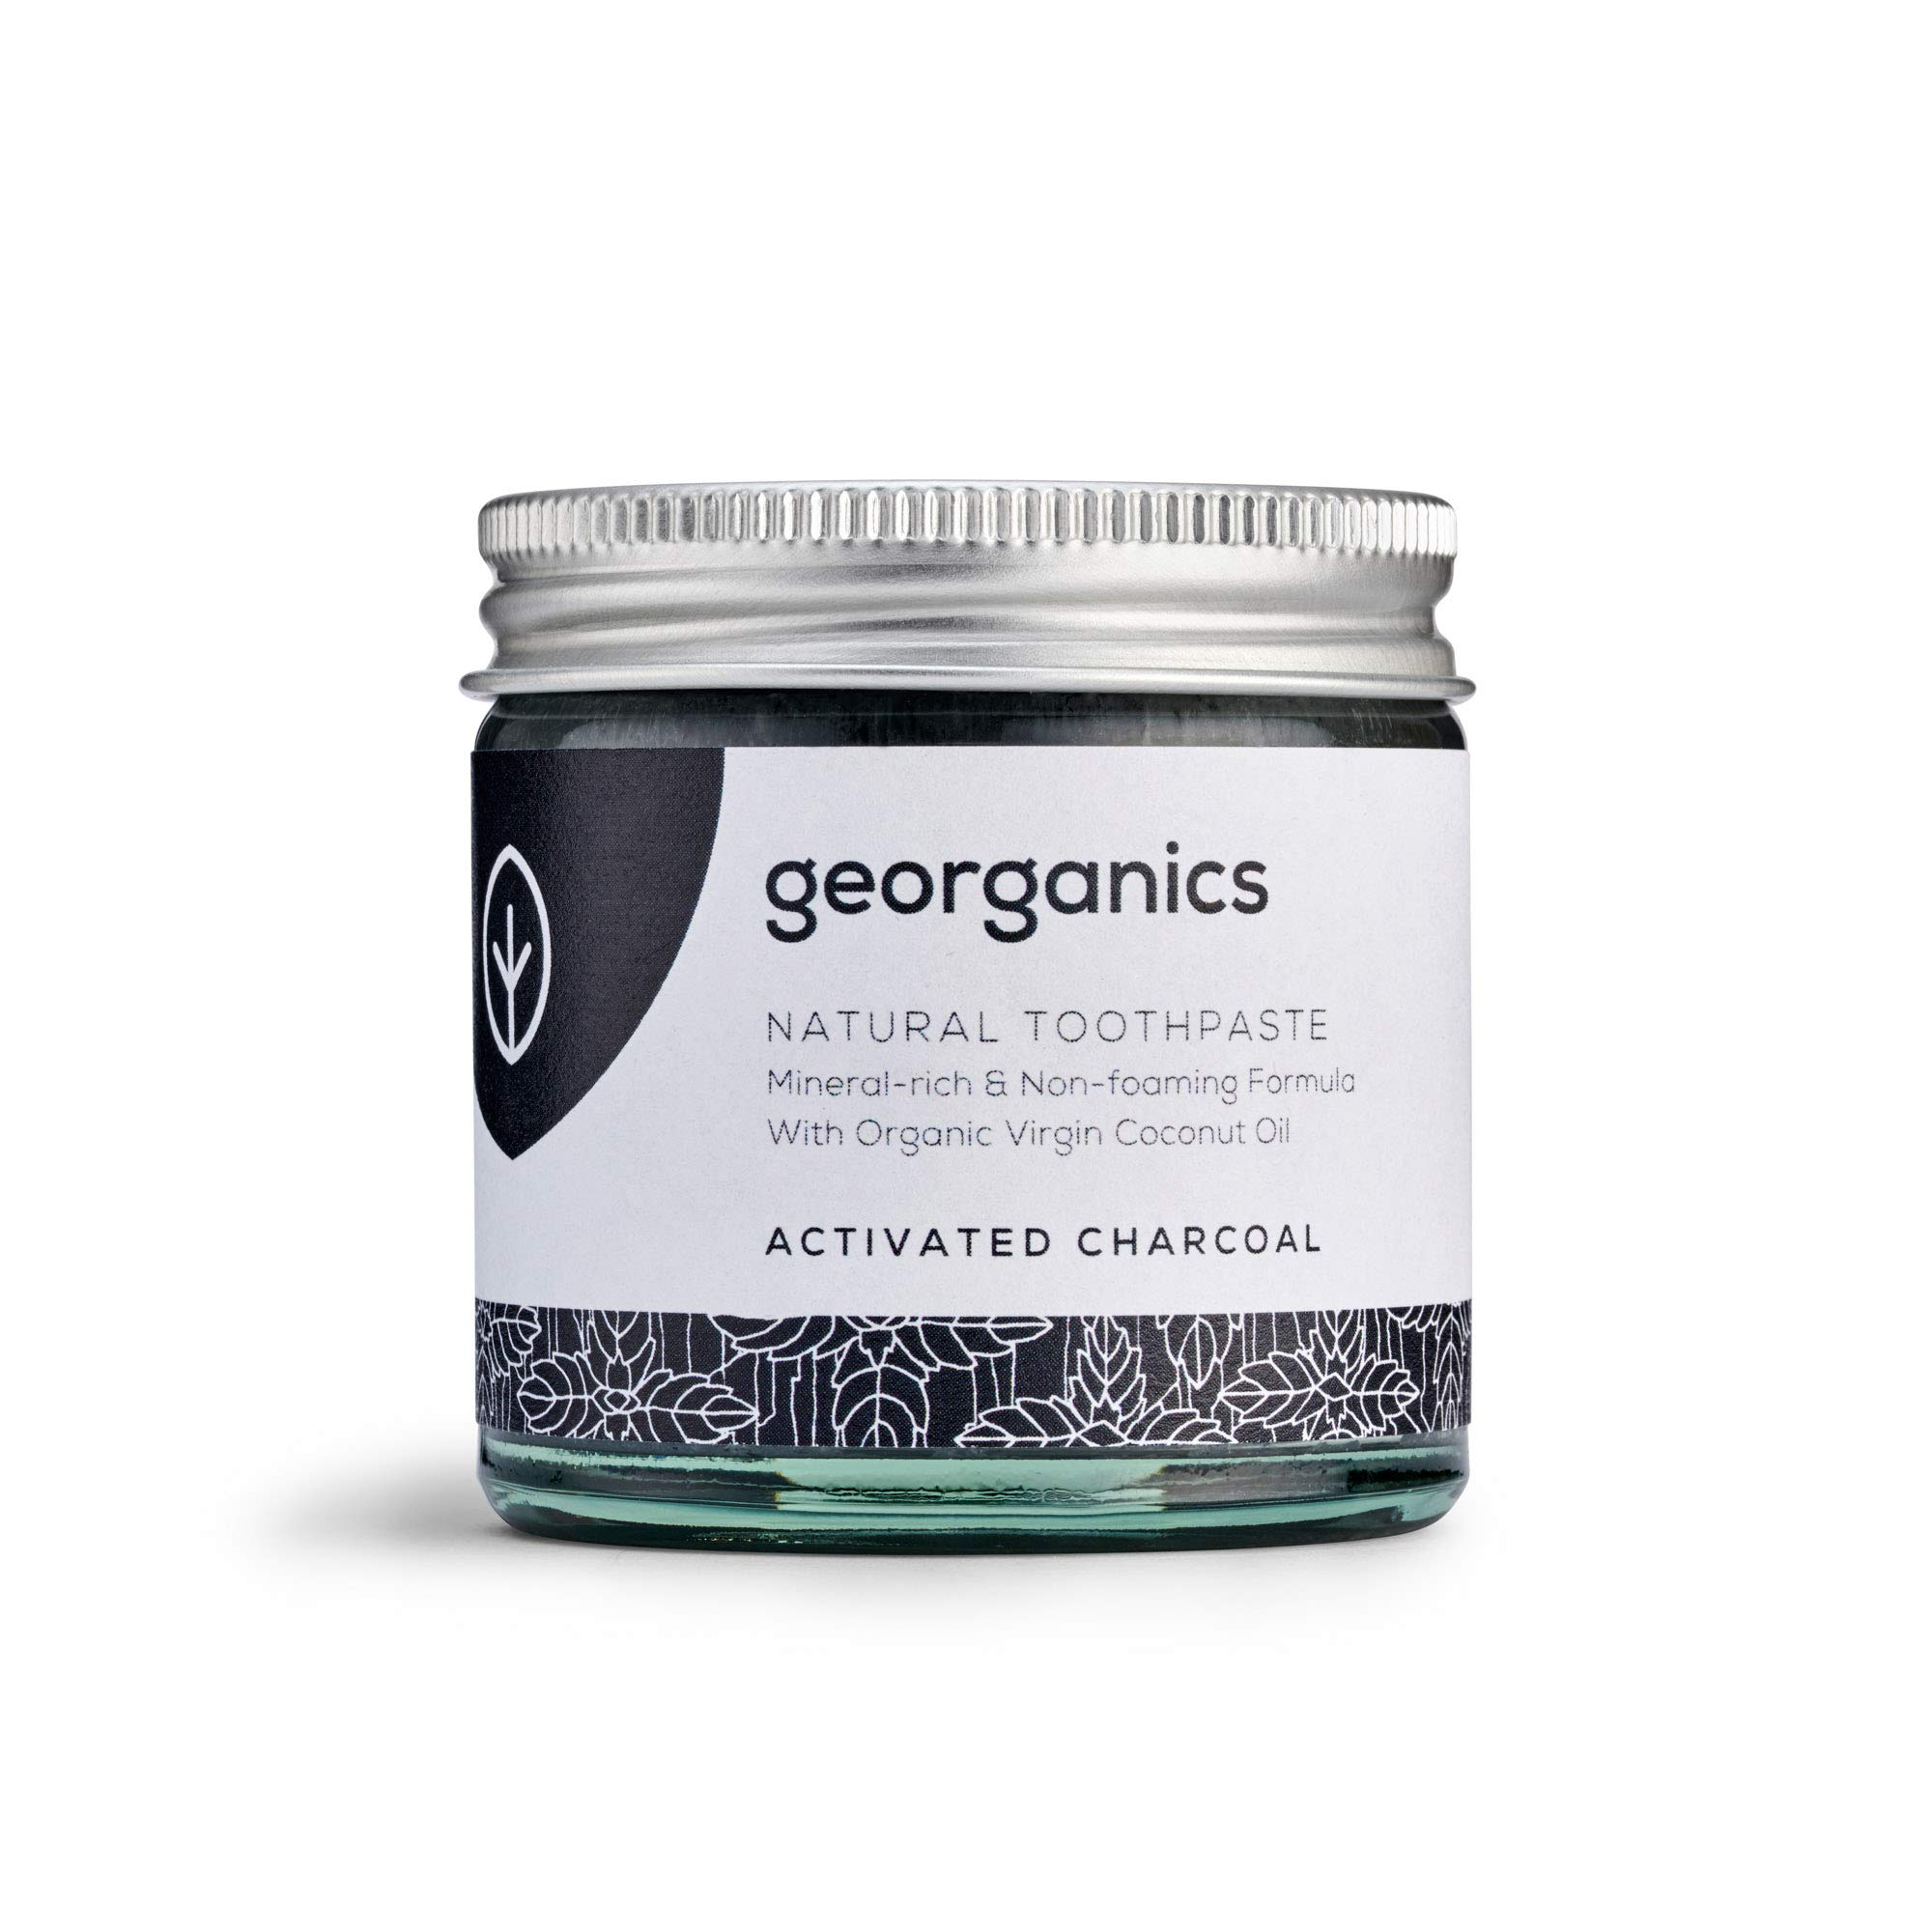 Georganics | Natural + Organic Mineral-Rich Whitening Toothpaste, Fluoride + SLS Free (Activated Charcoal, 60ml)